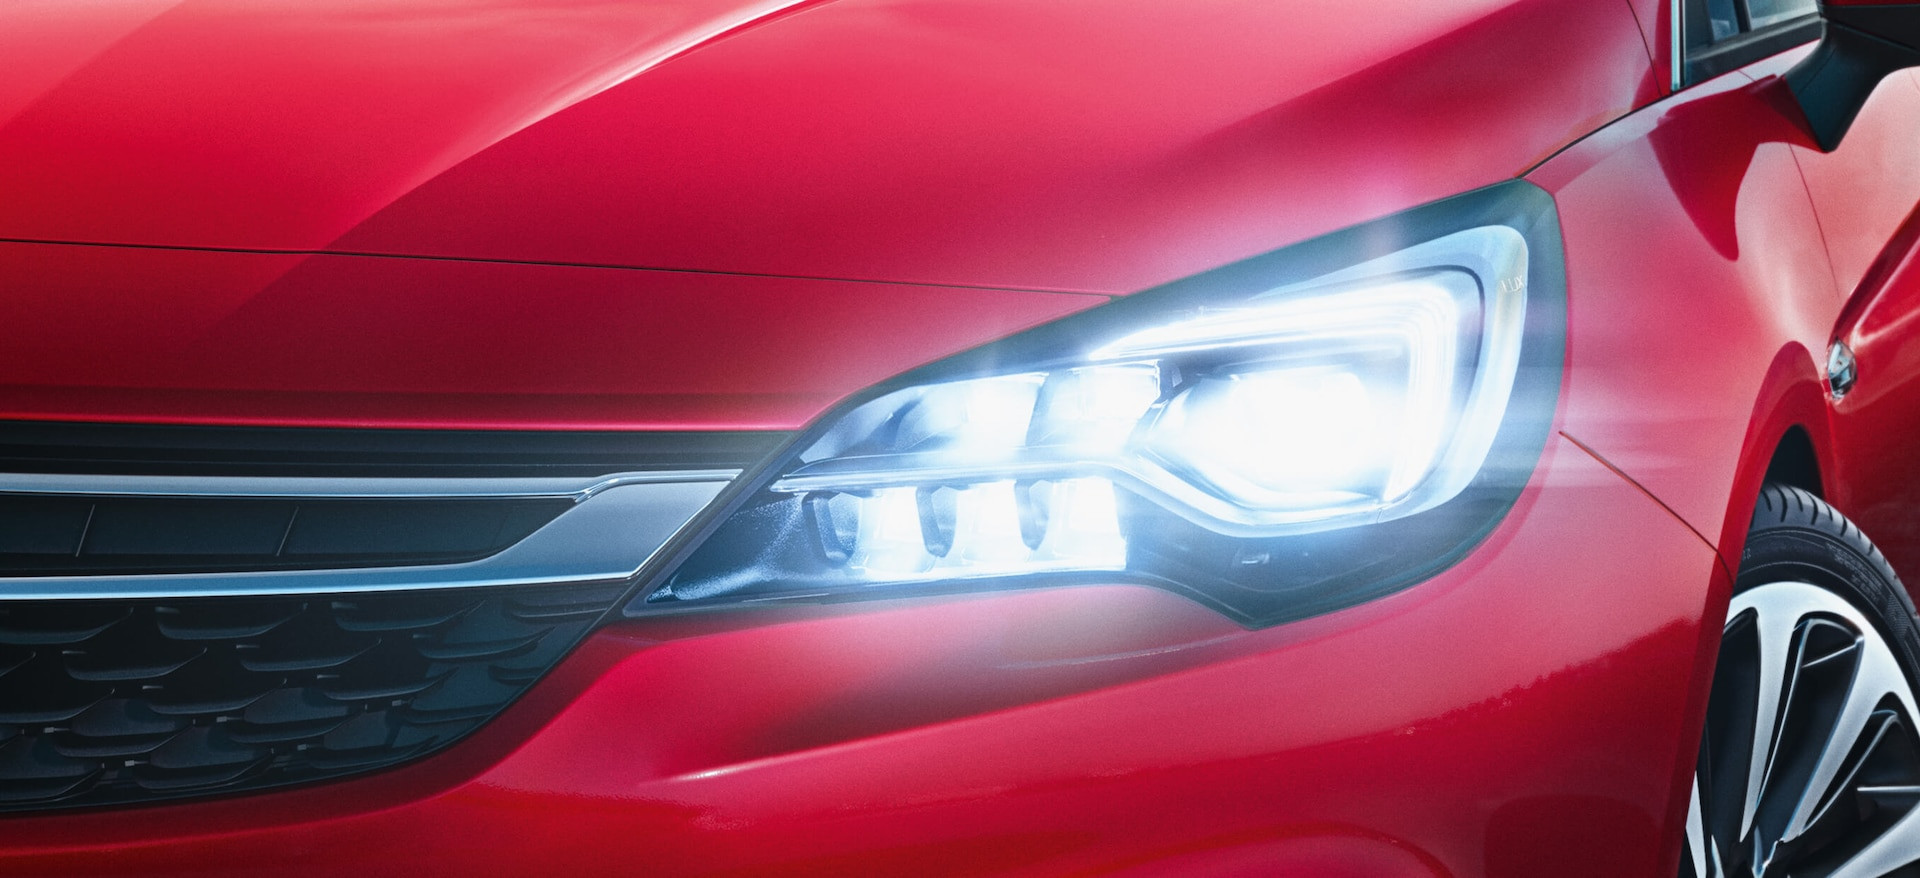 Opel_Astra_Intellilux_21x9_as16_e01_236_